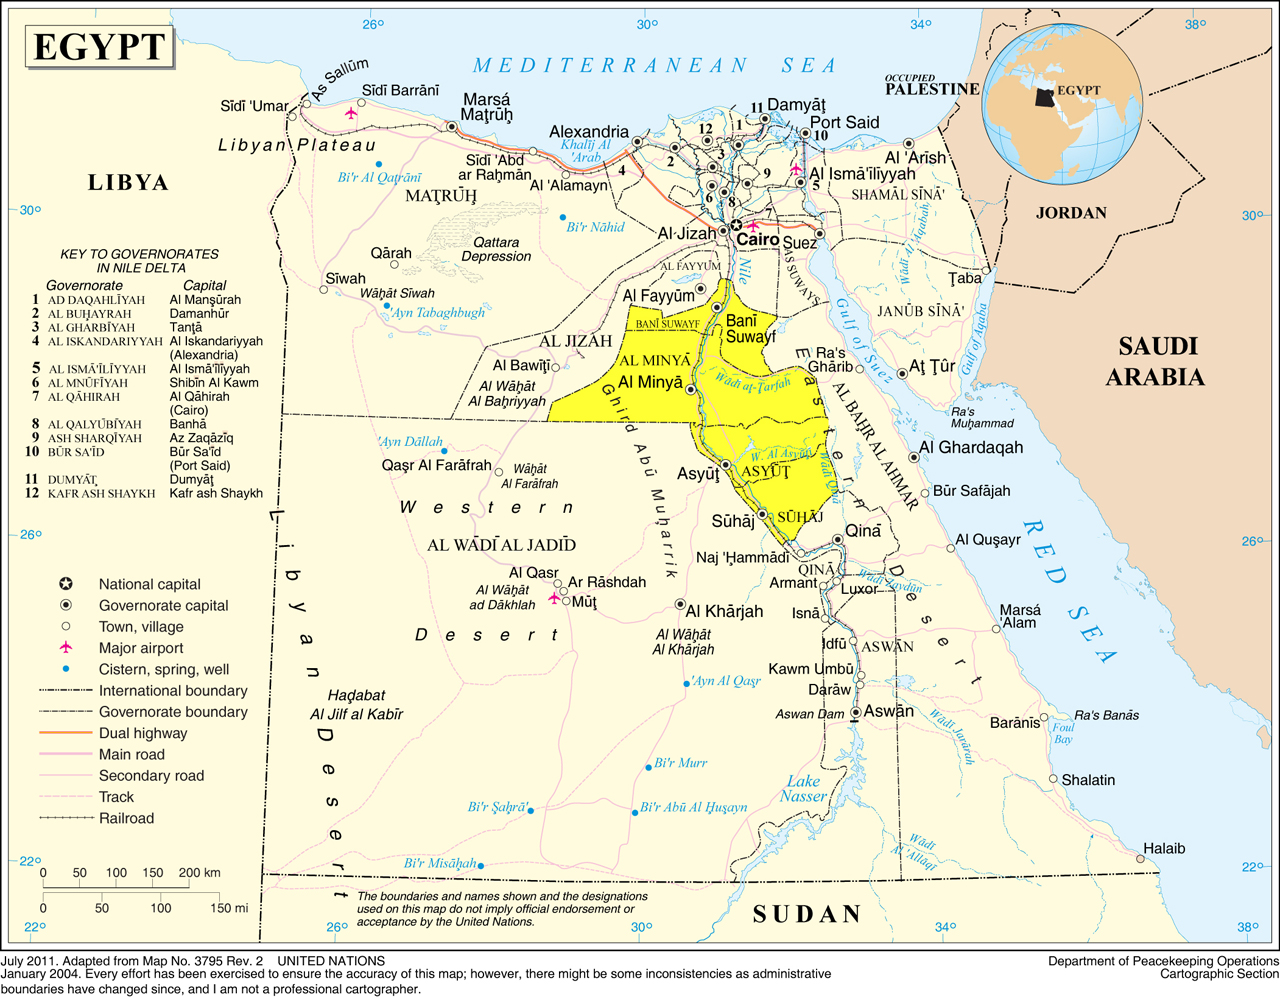 The Nile Valley Middle Egypt - Where is egypt